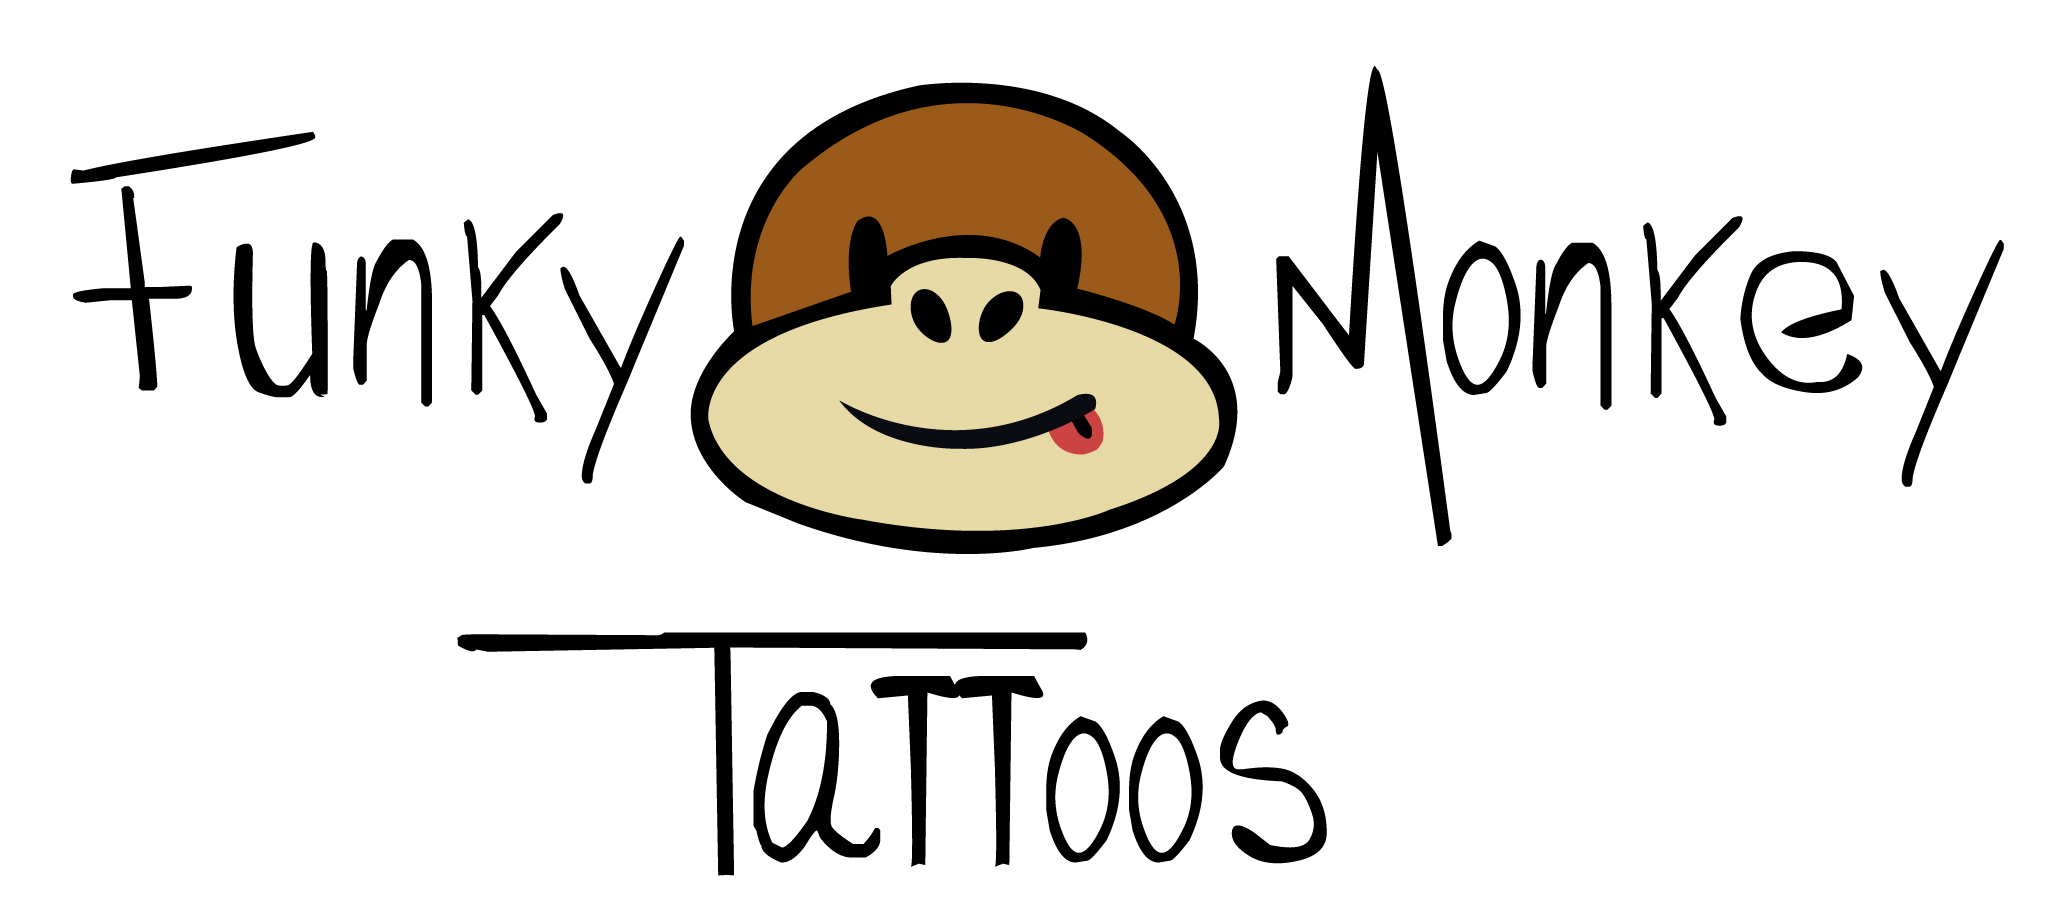 Funky monkey tattoos